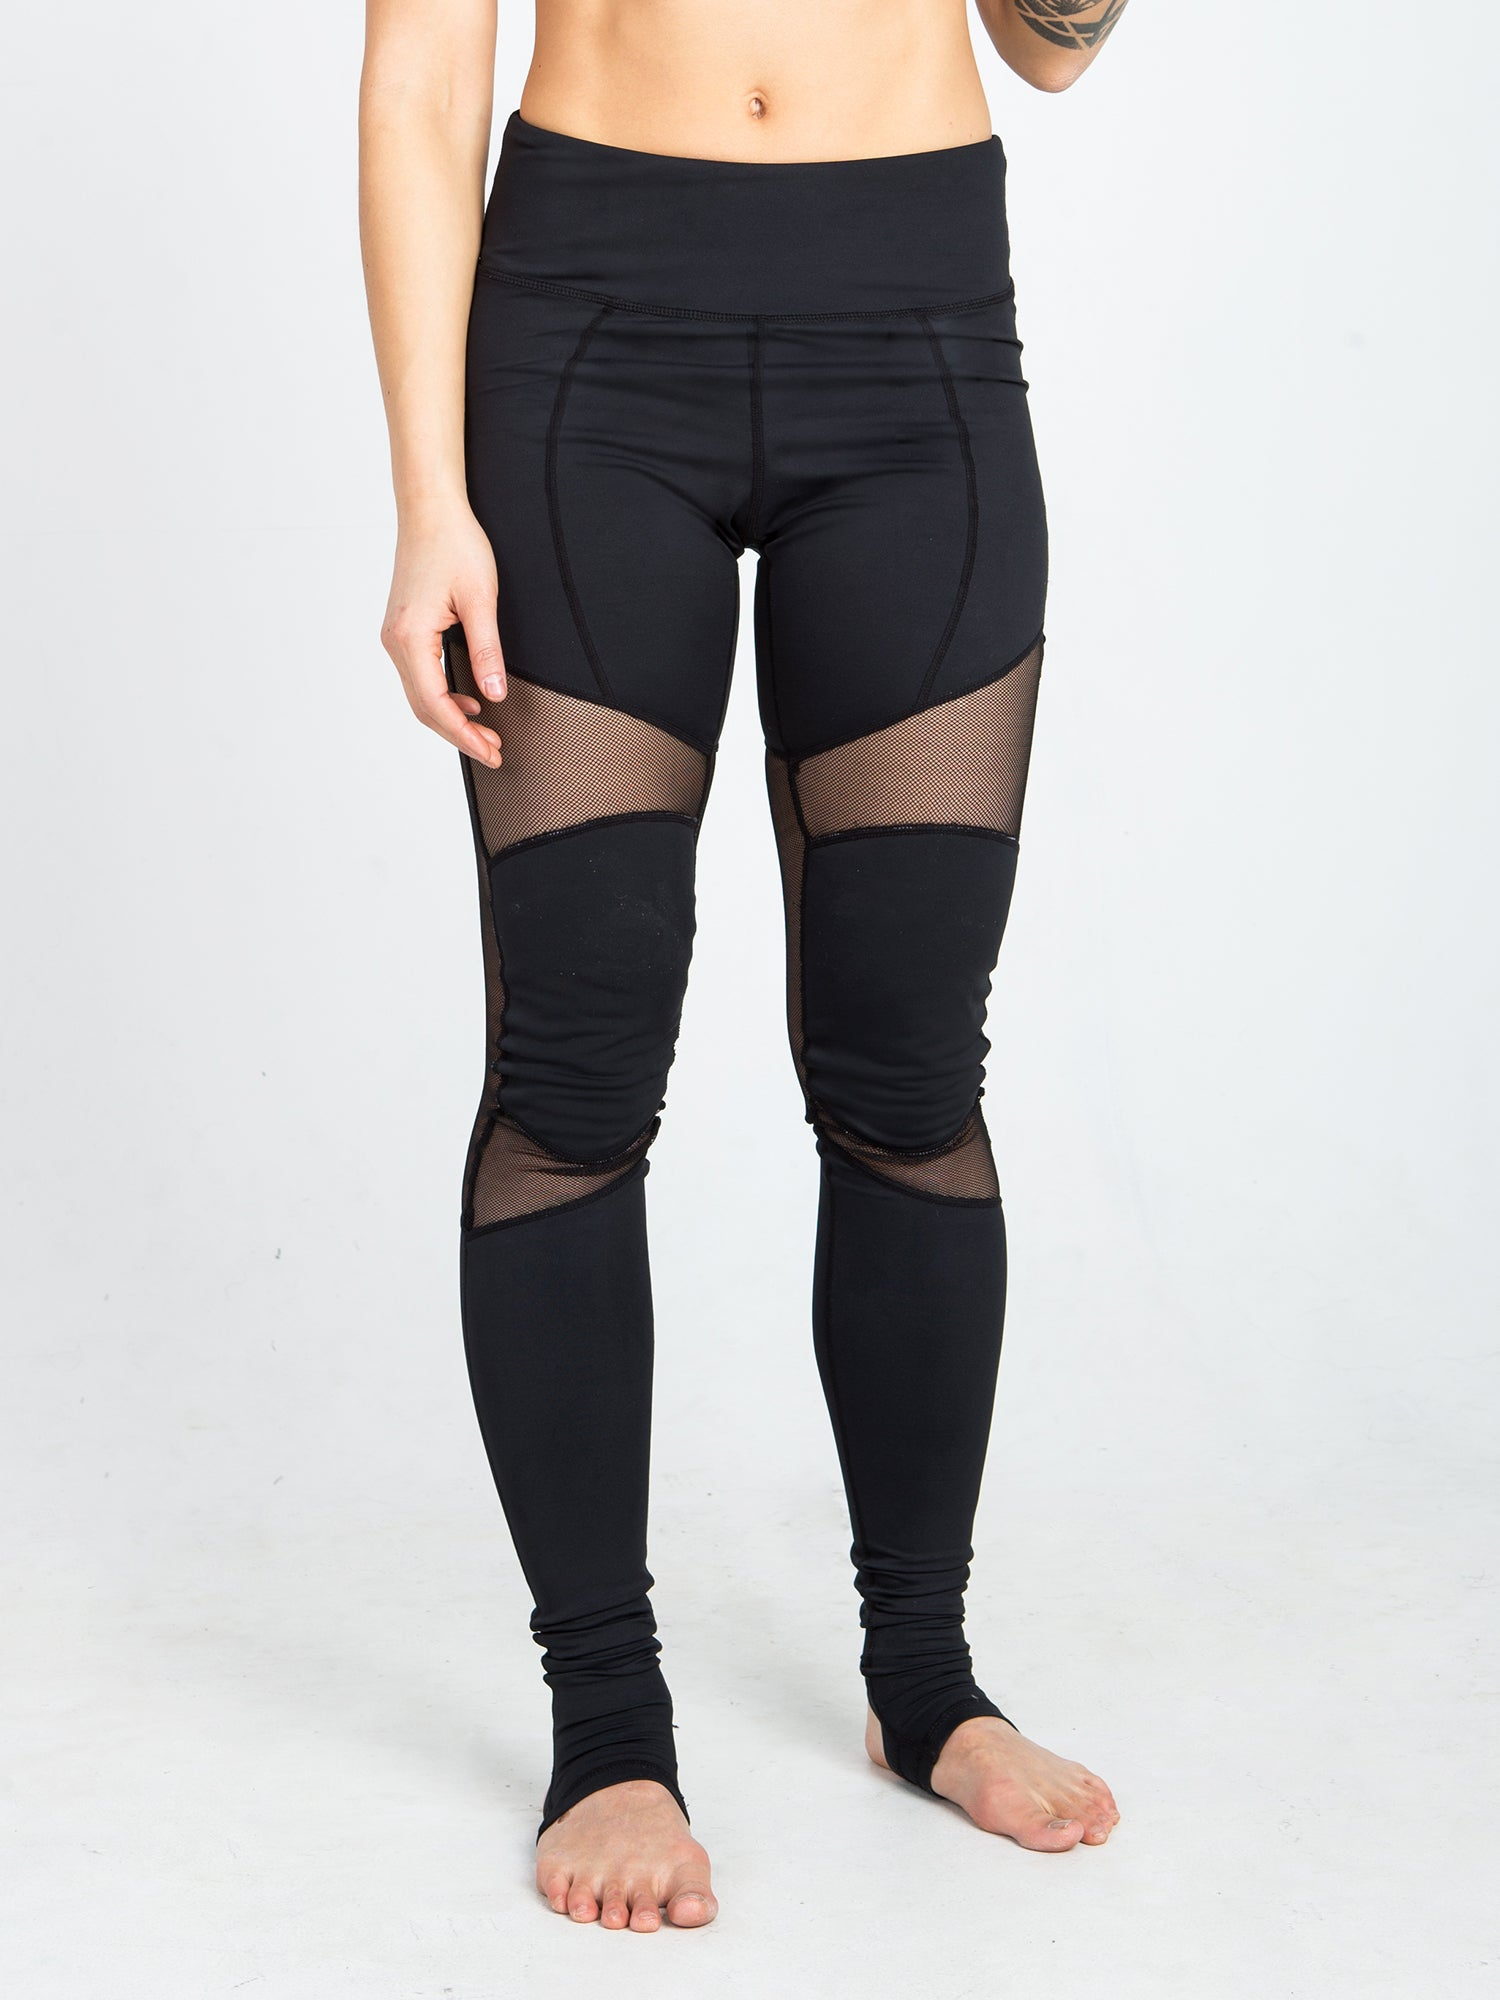 Bad Girls Legging in Black